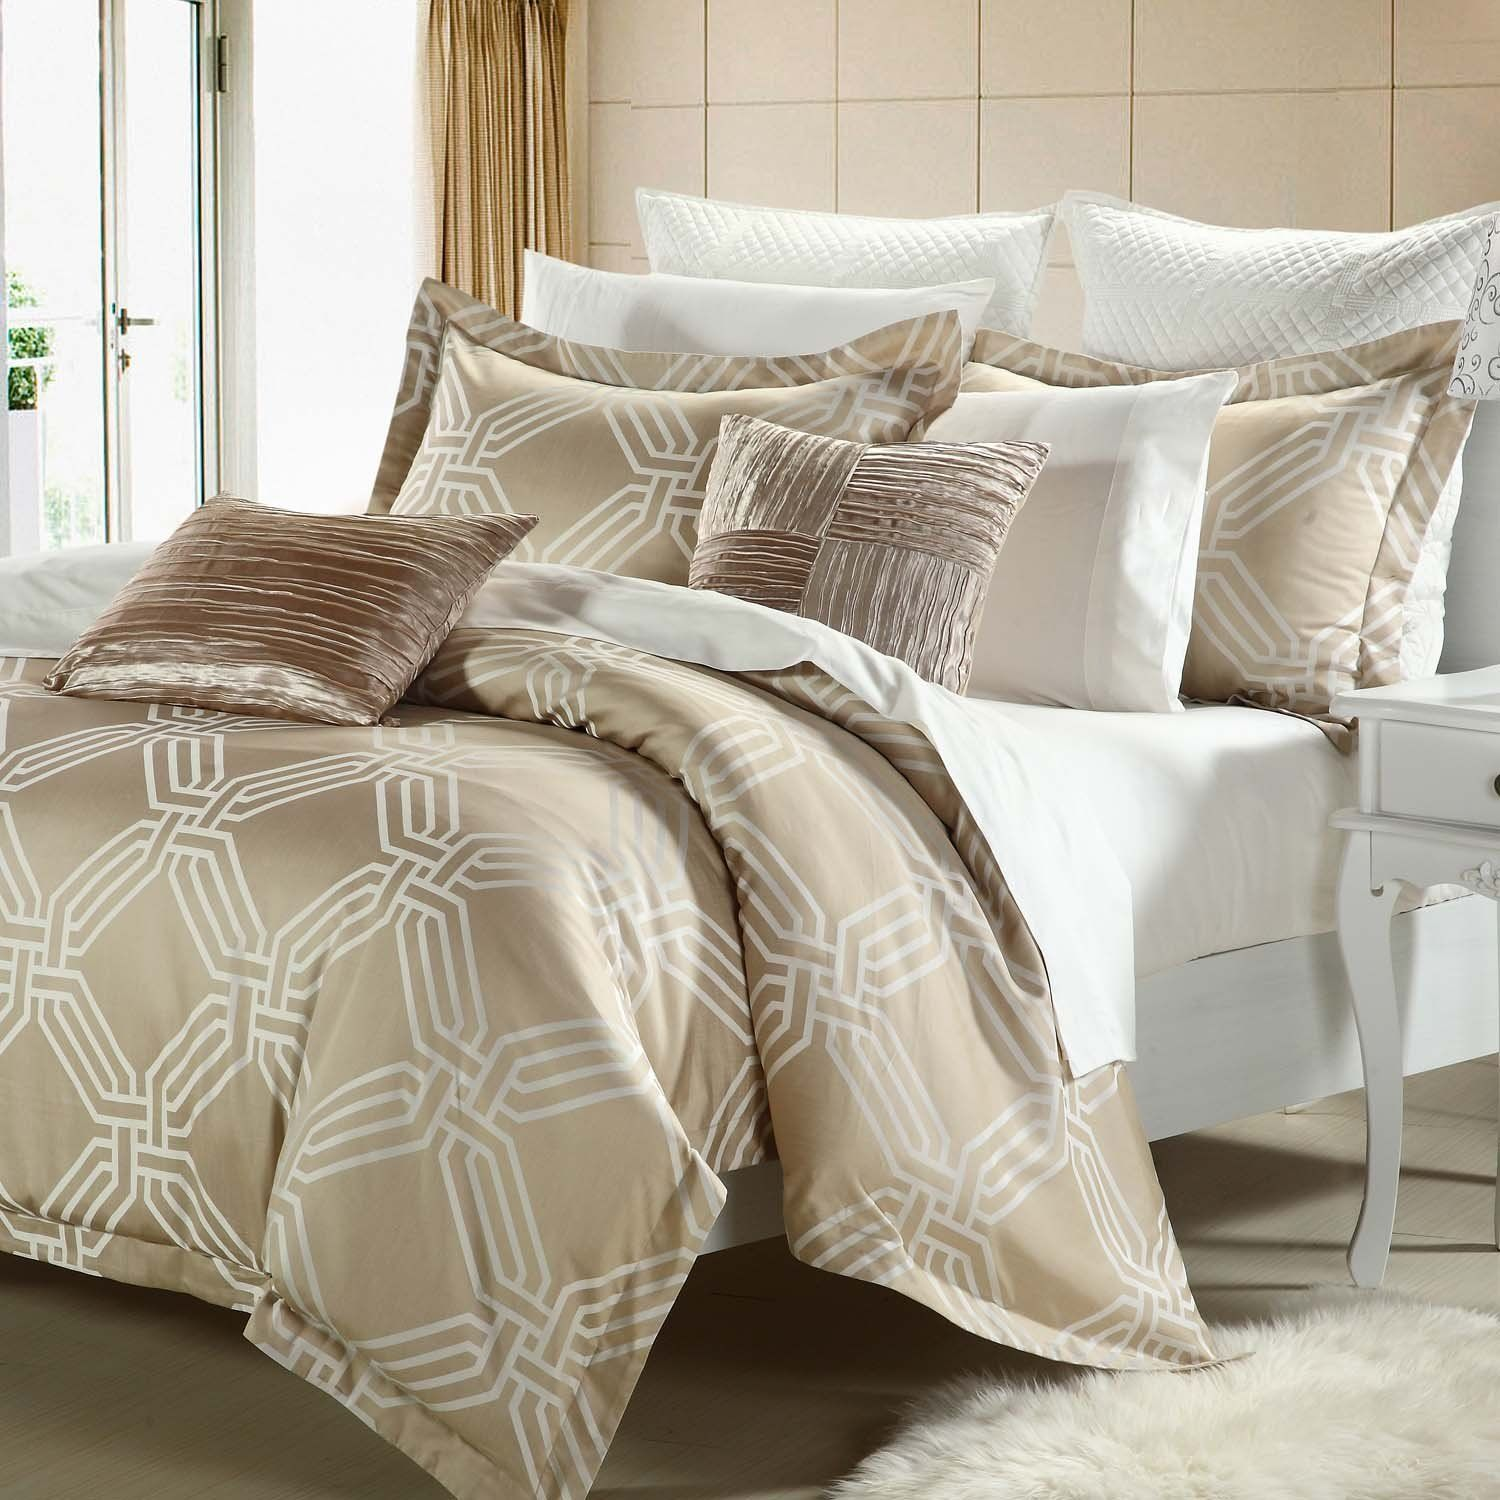 Beige Cream Brown 10 Piece Queen Comforter Set With Sheets Striped Pattern Clay Comforter Sets Chic Home Bedding Sets